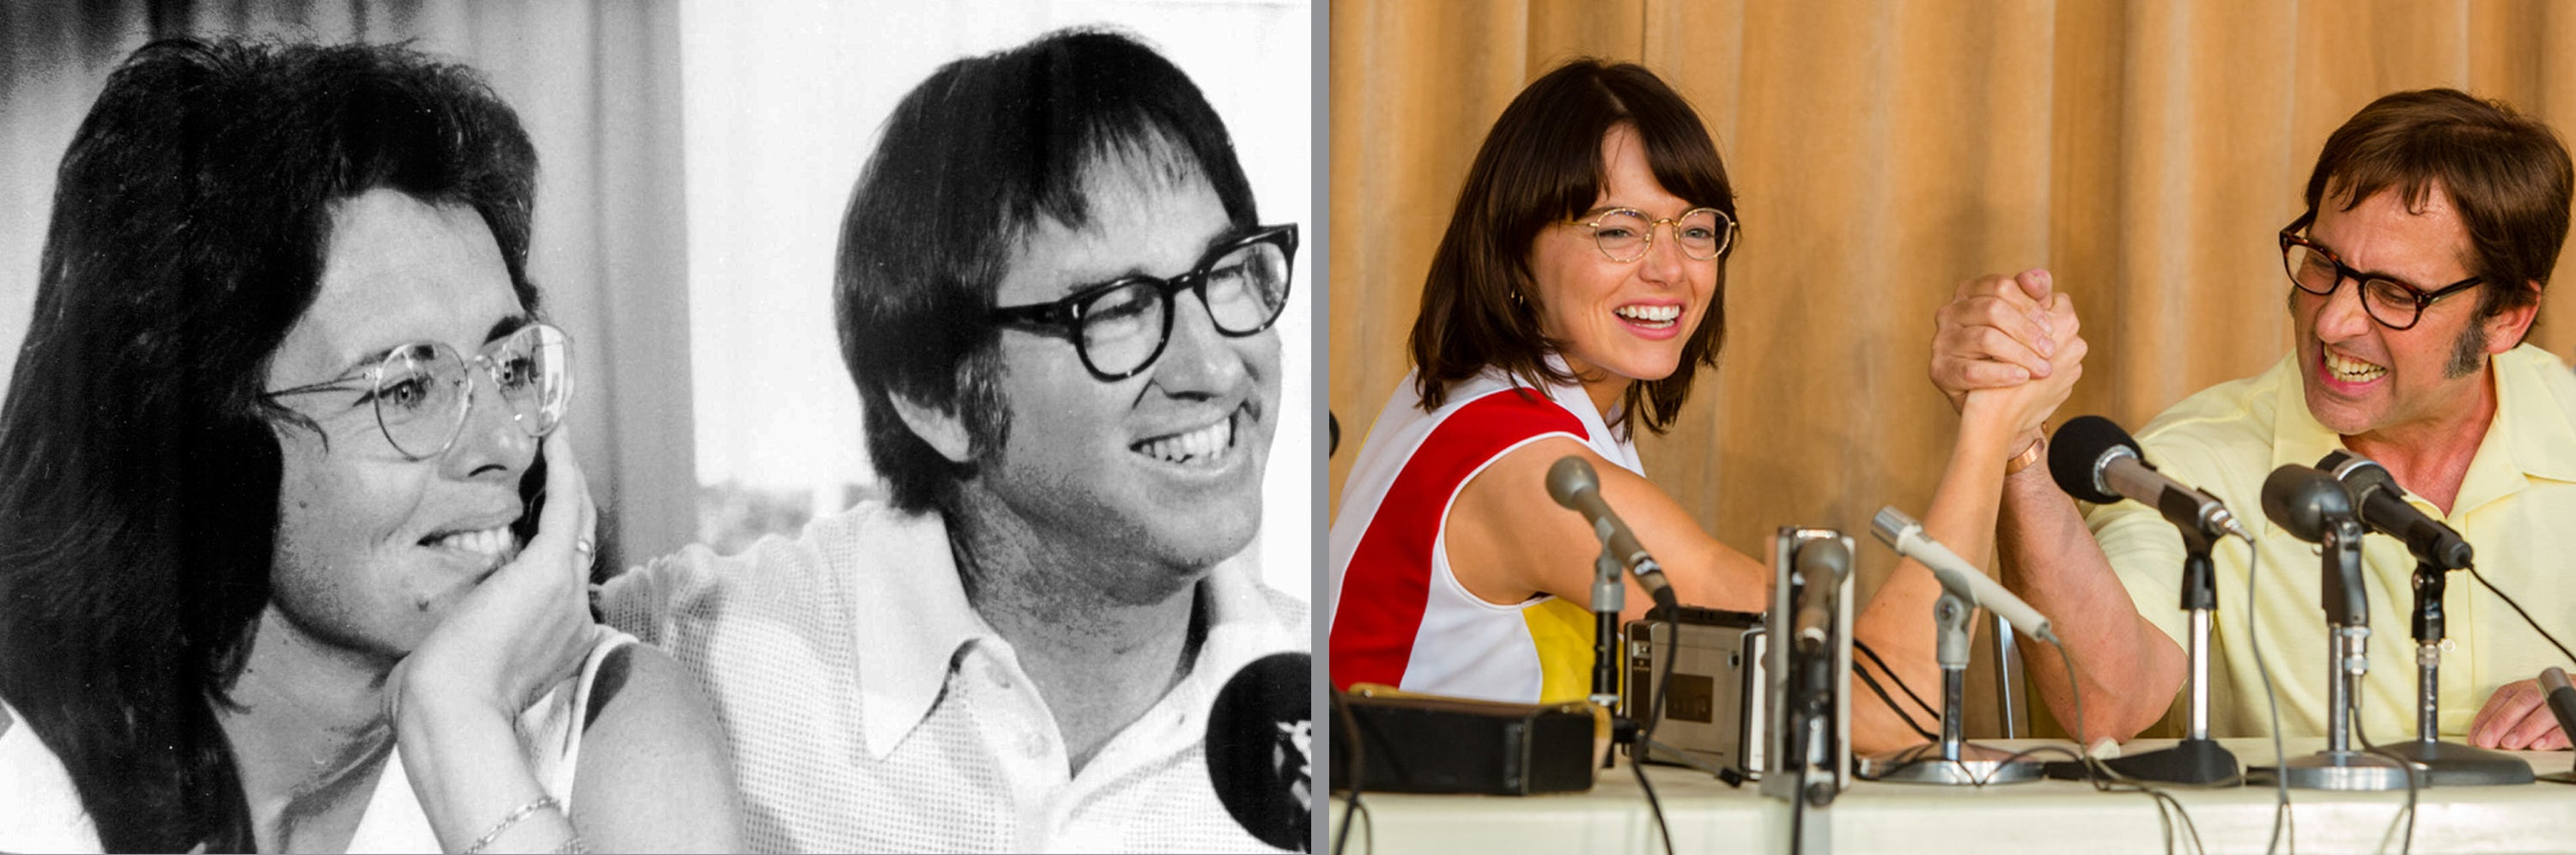 Billie Jean King with Bobby Riggs and Emma Stone with Steve Carell